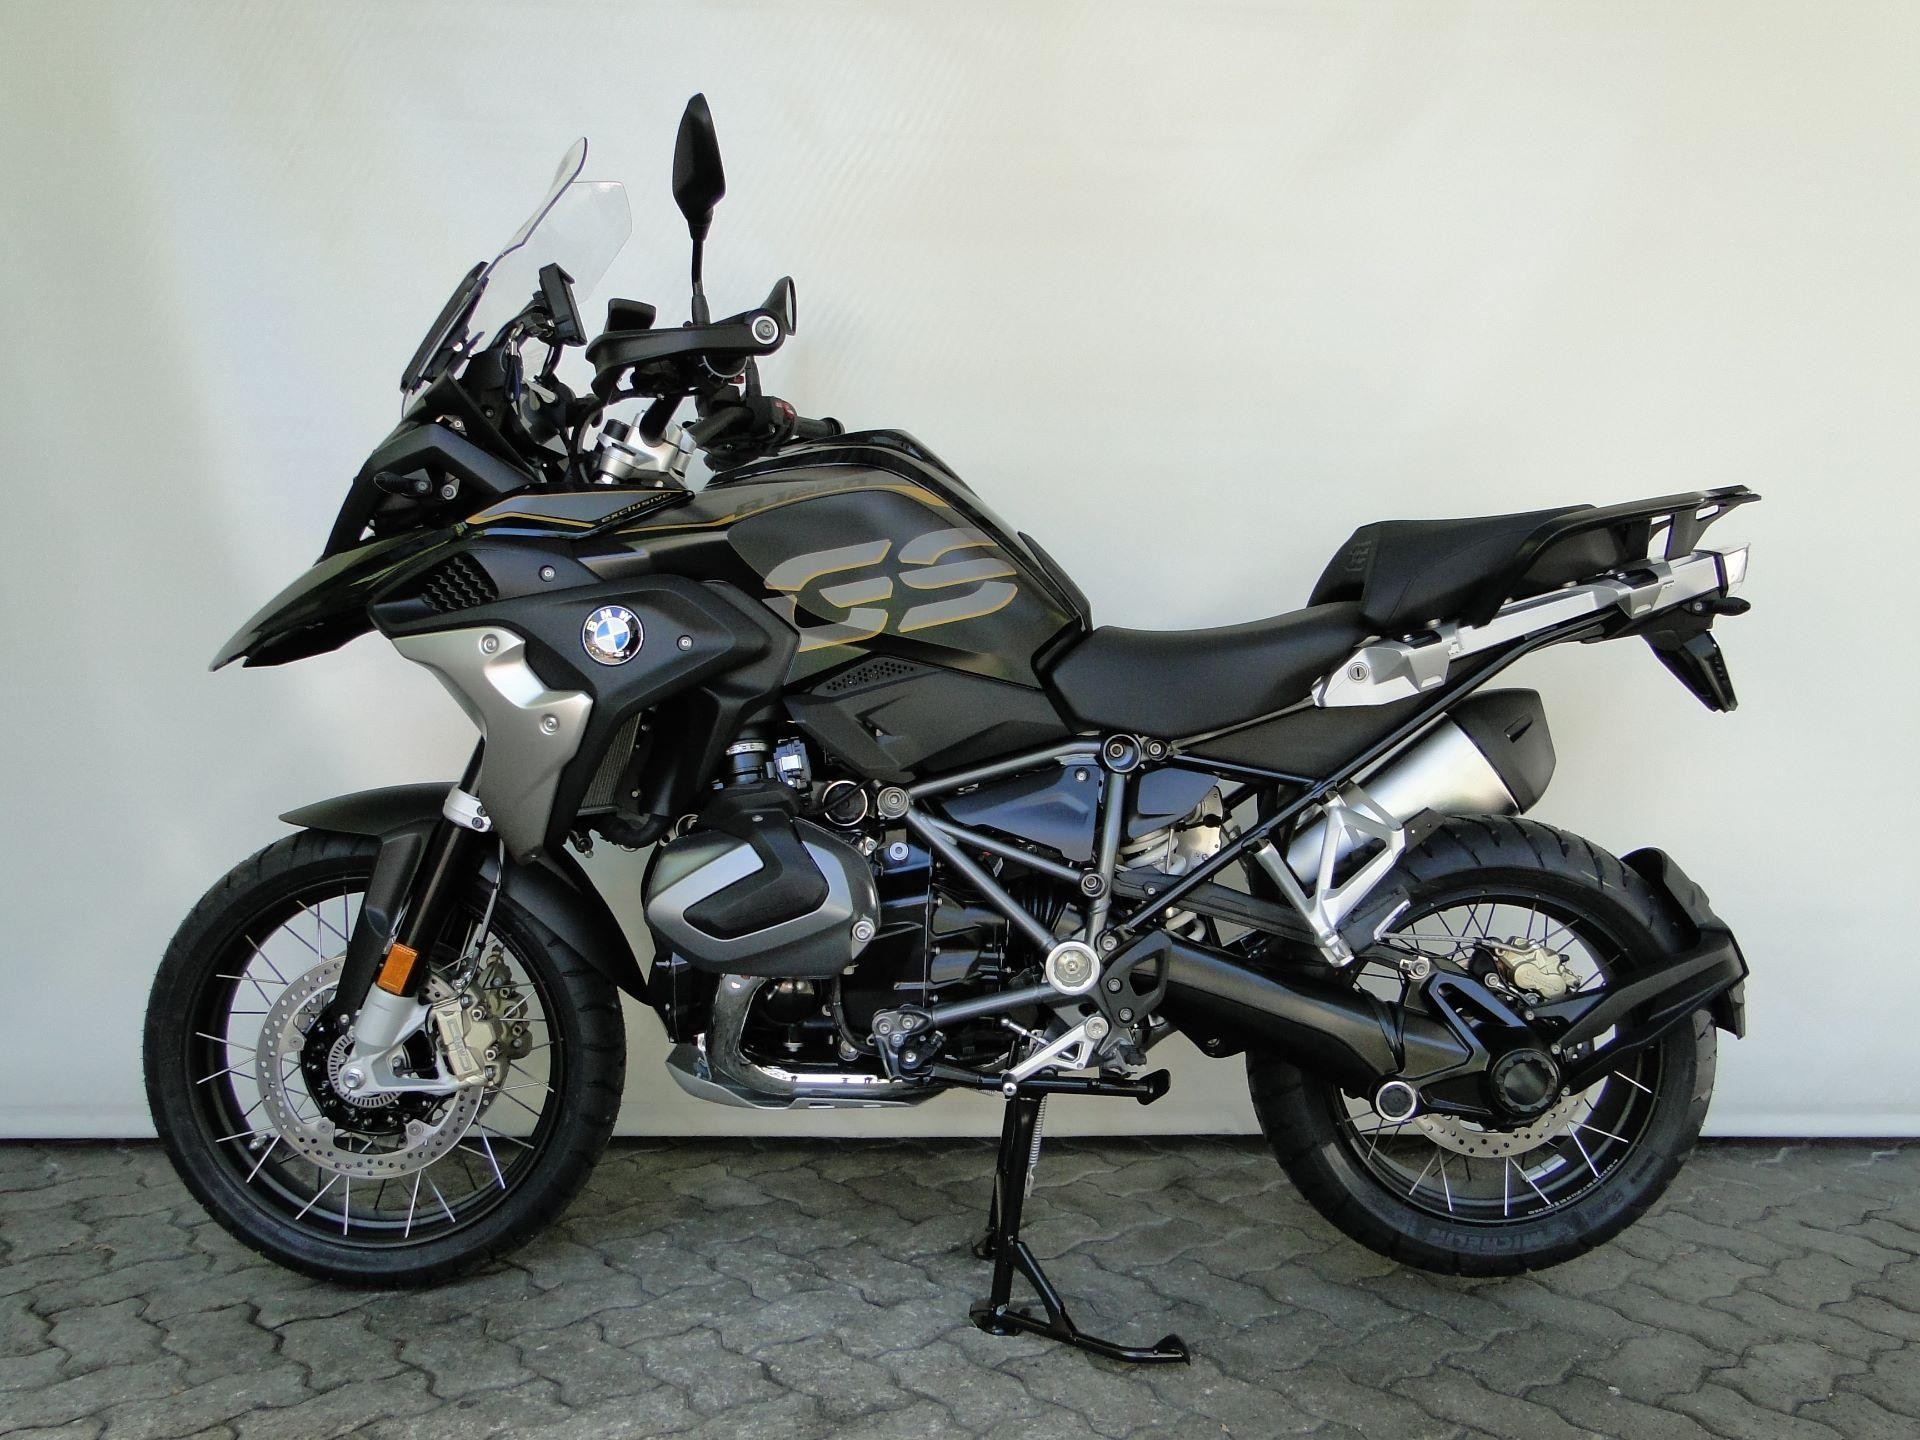 motorrad neufahrzeug kaufen bmw r 1250 gs new hobi. Black Bedroom Furniture Sets. Home Design Ideas